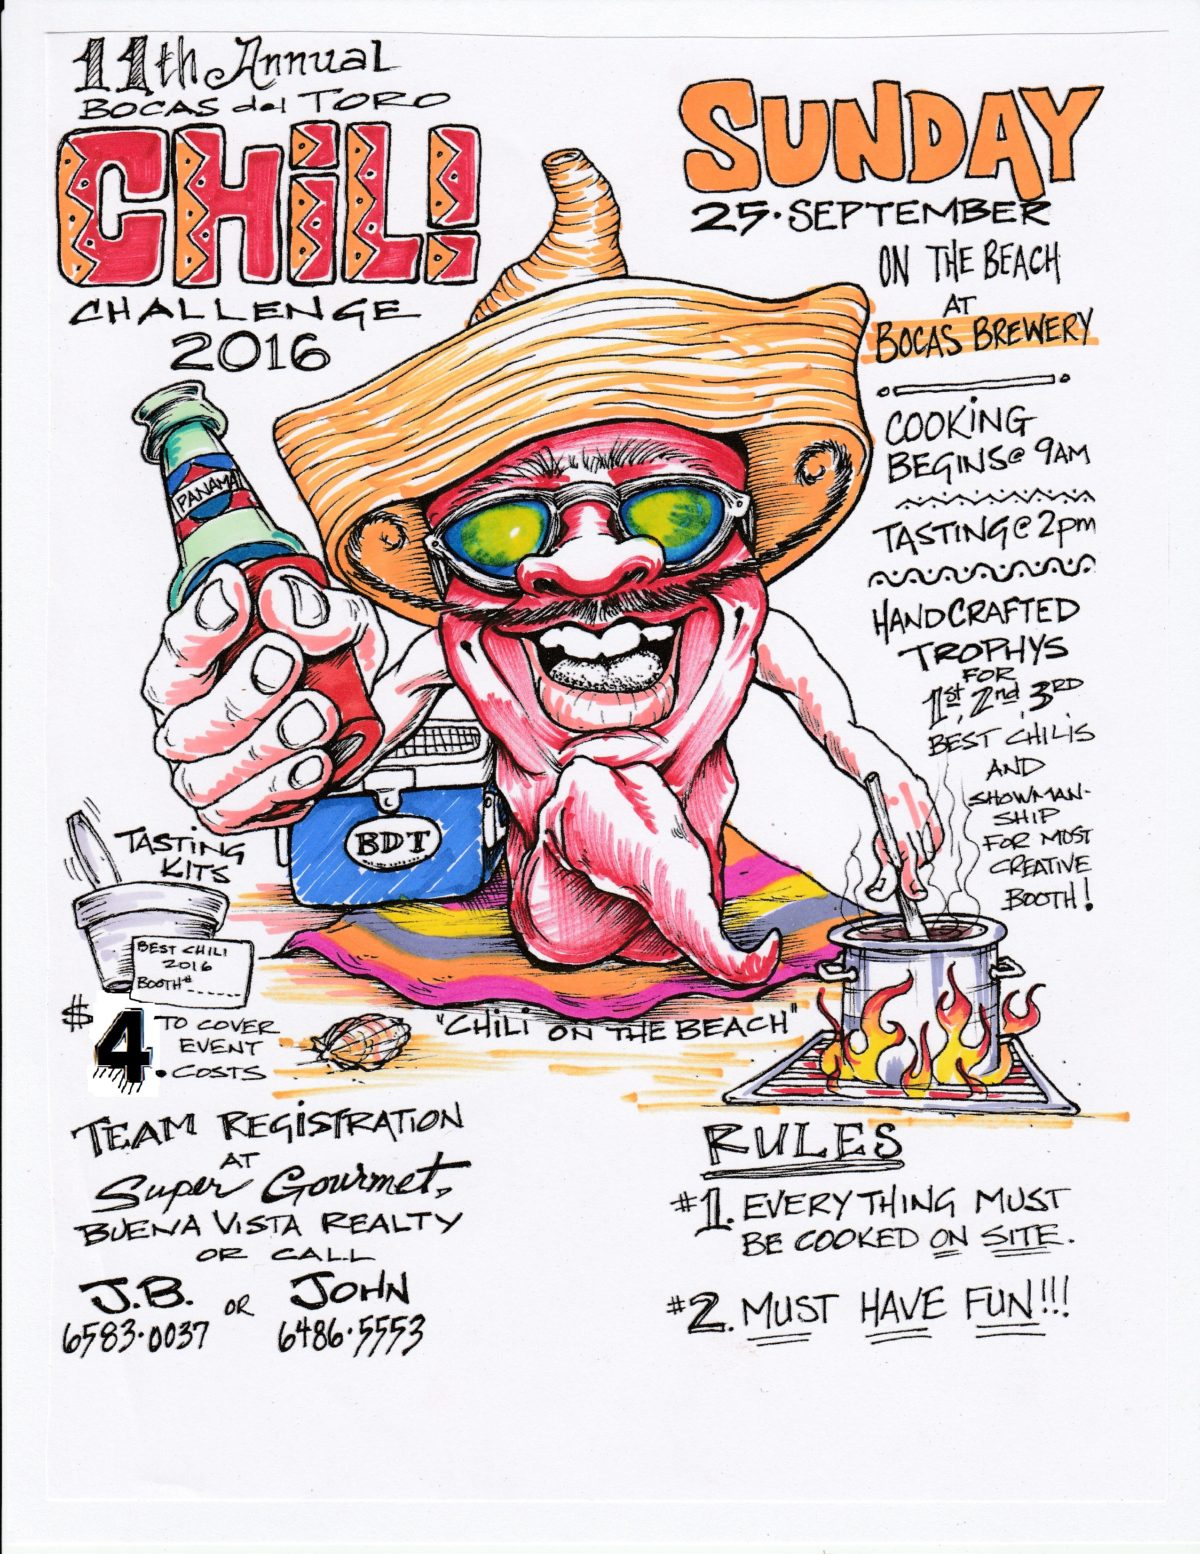 chili-cookoff-2016-flyer